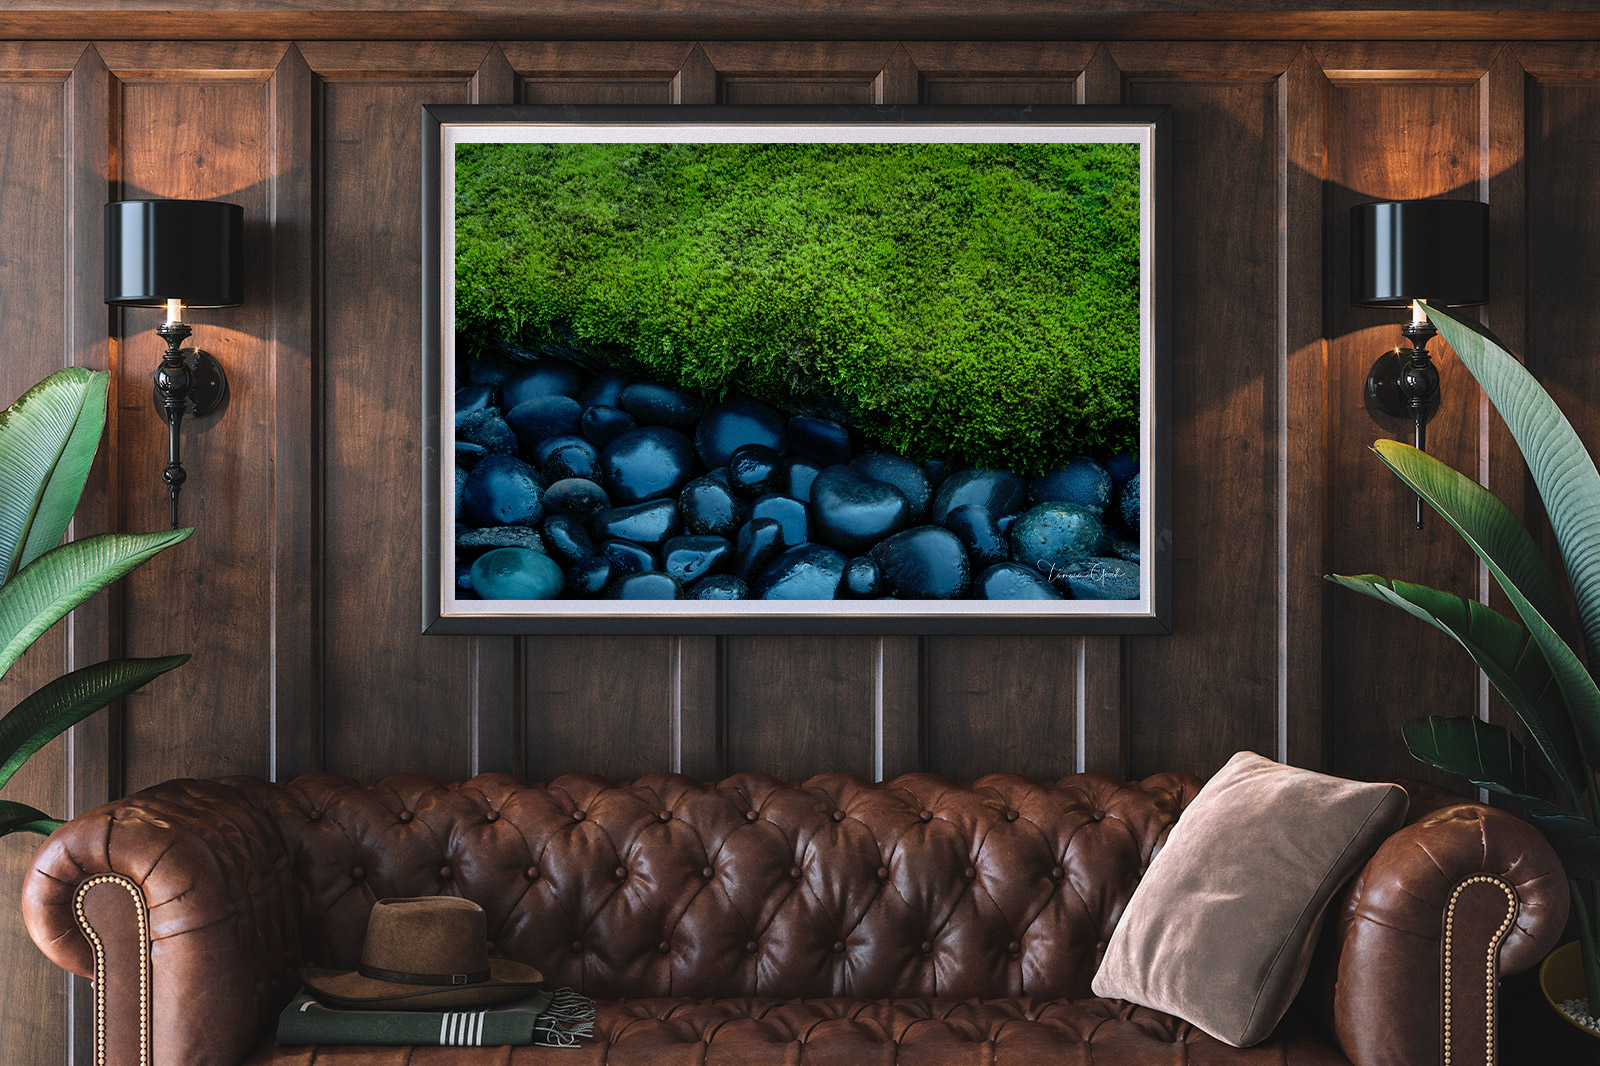 A framed print of Moss and rocks hanging over a leather couch.